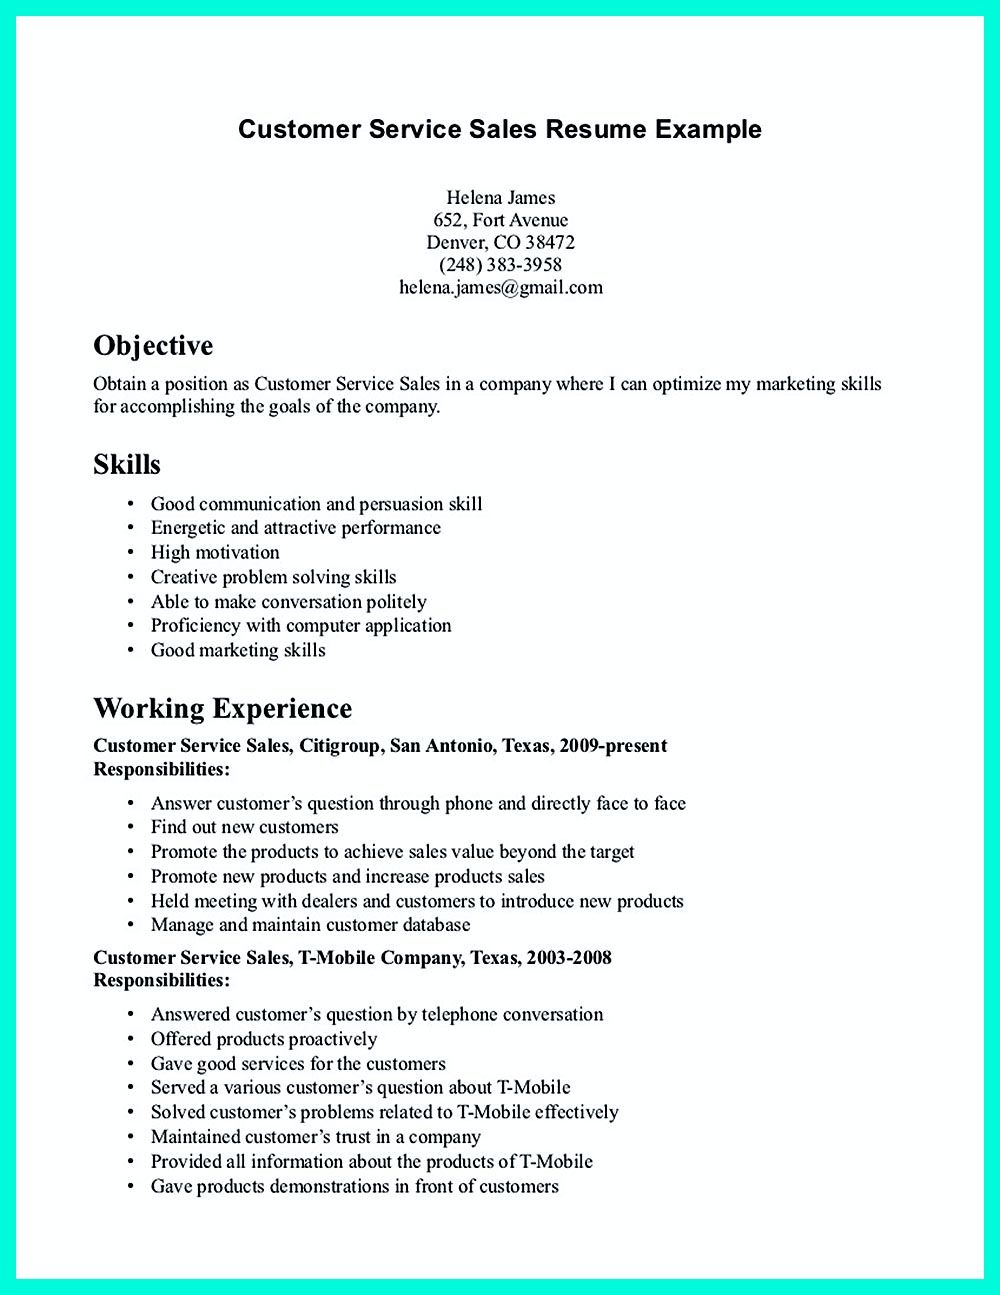 csr resume or customer service representative resume include the job aspects where it showcase your